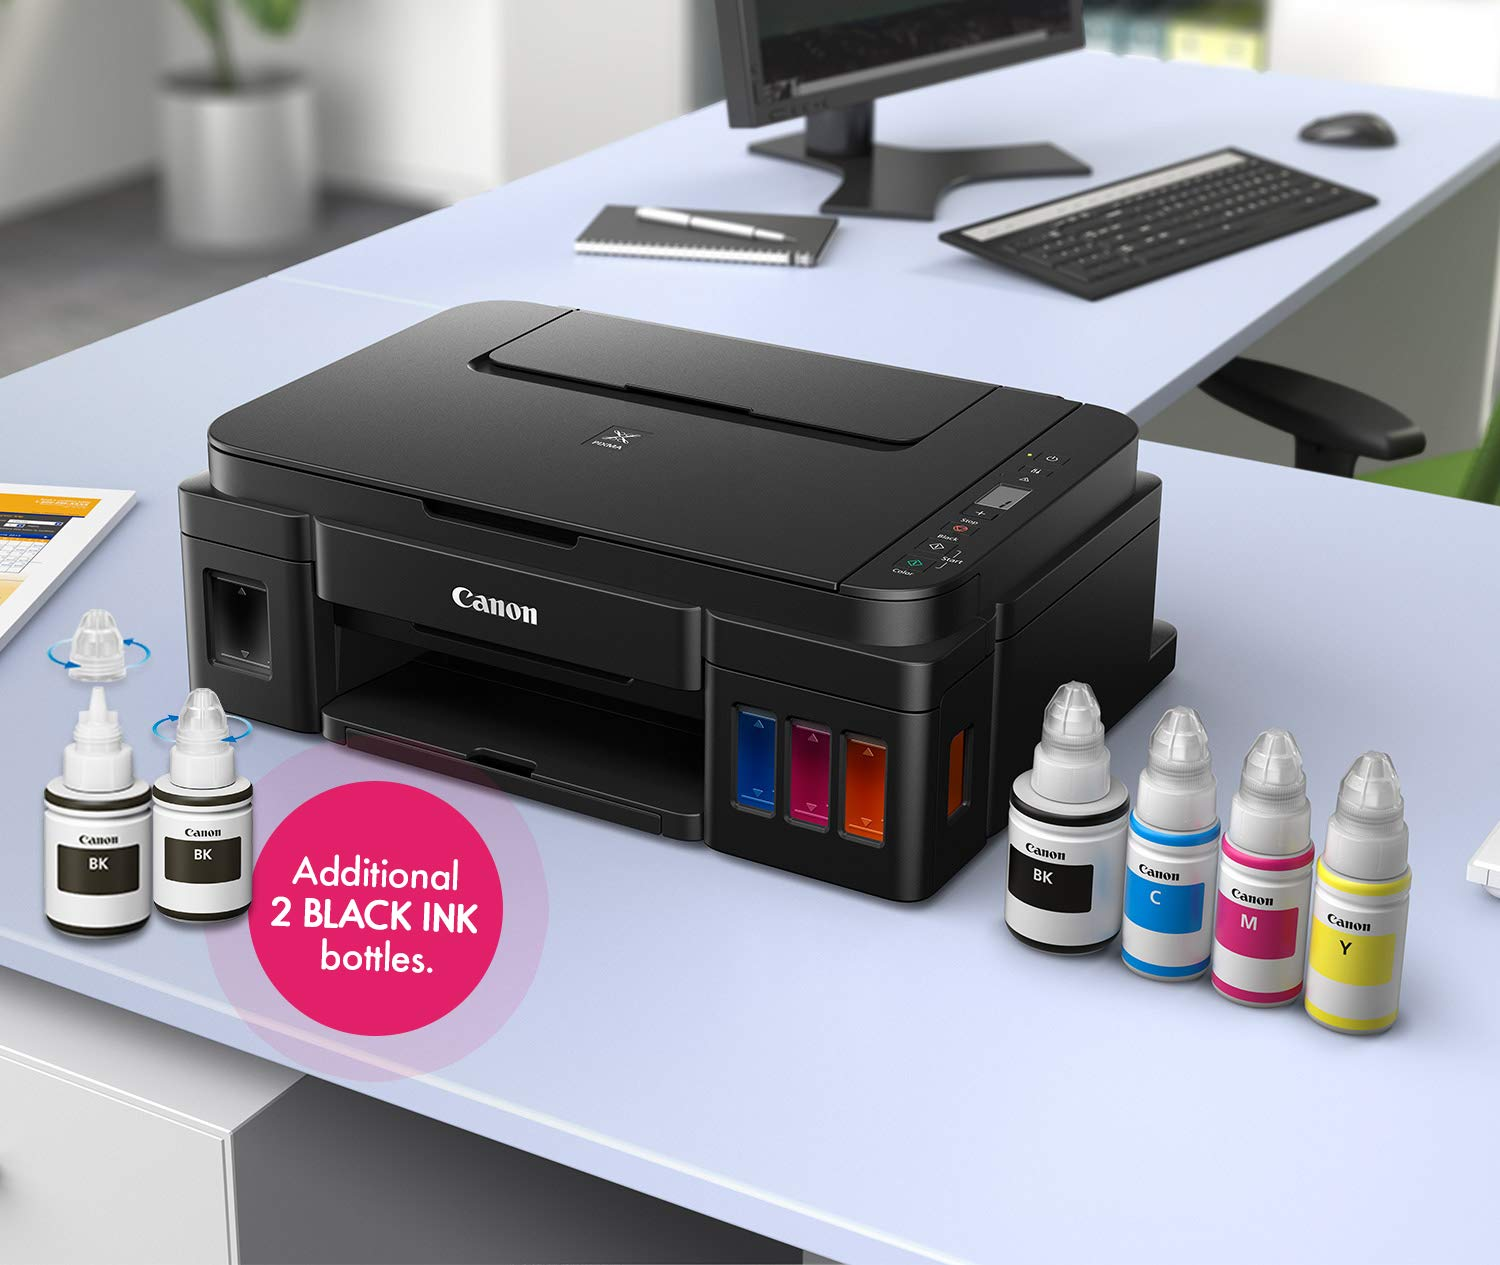 Canon G3000 All In One Wi Fi Printer Buy Pixma G3012 Wireless Ink Tank Colour Online At Low Prices India Reviews Ratings